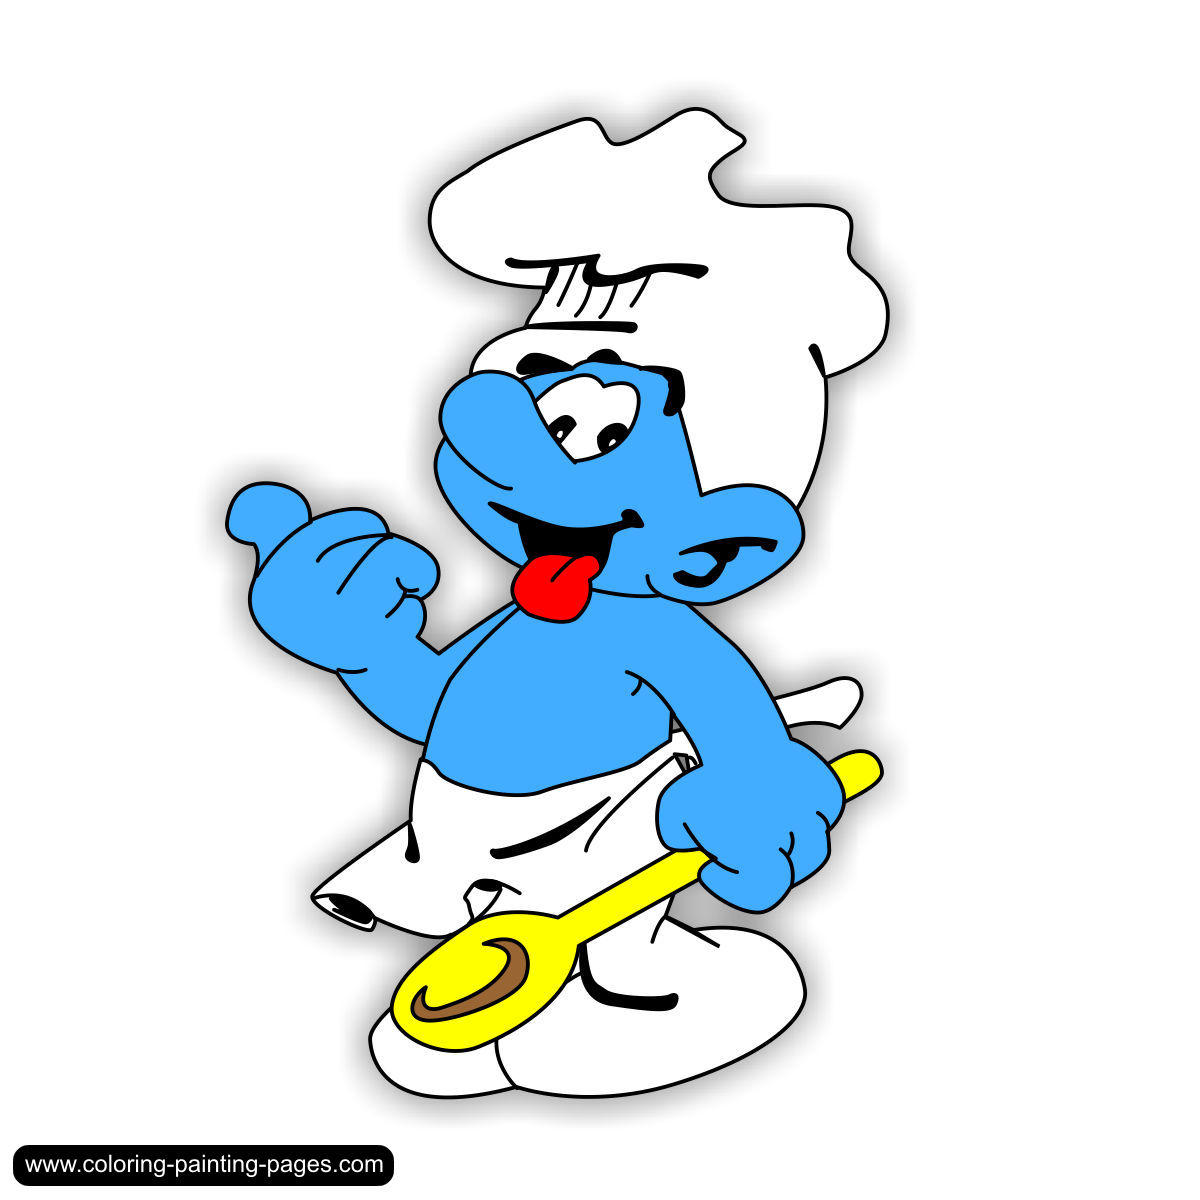 Smurfs clipart free download picture free Smurf Clipart | Free download best Smurf Clipart on ... picture free